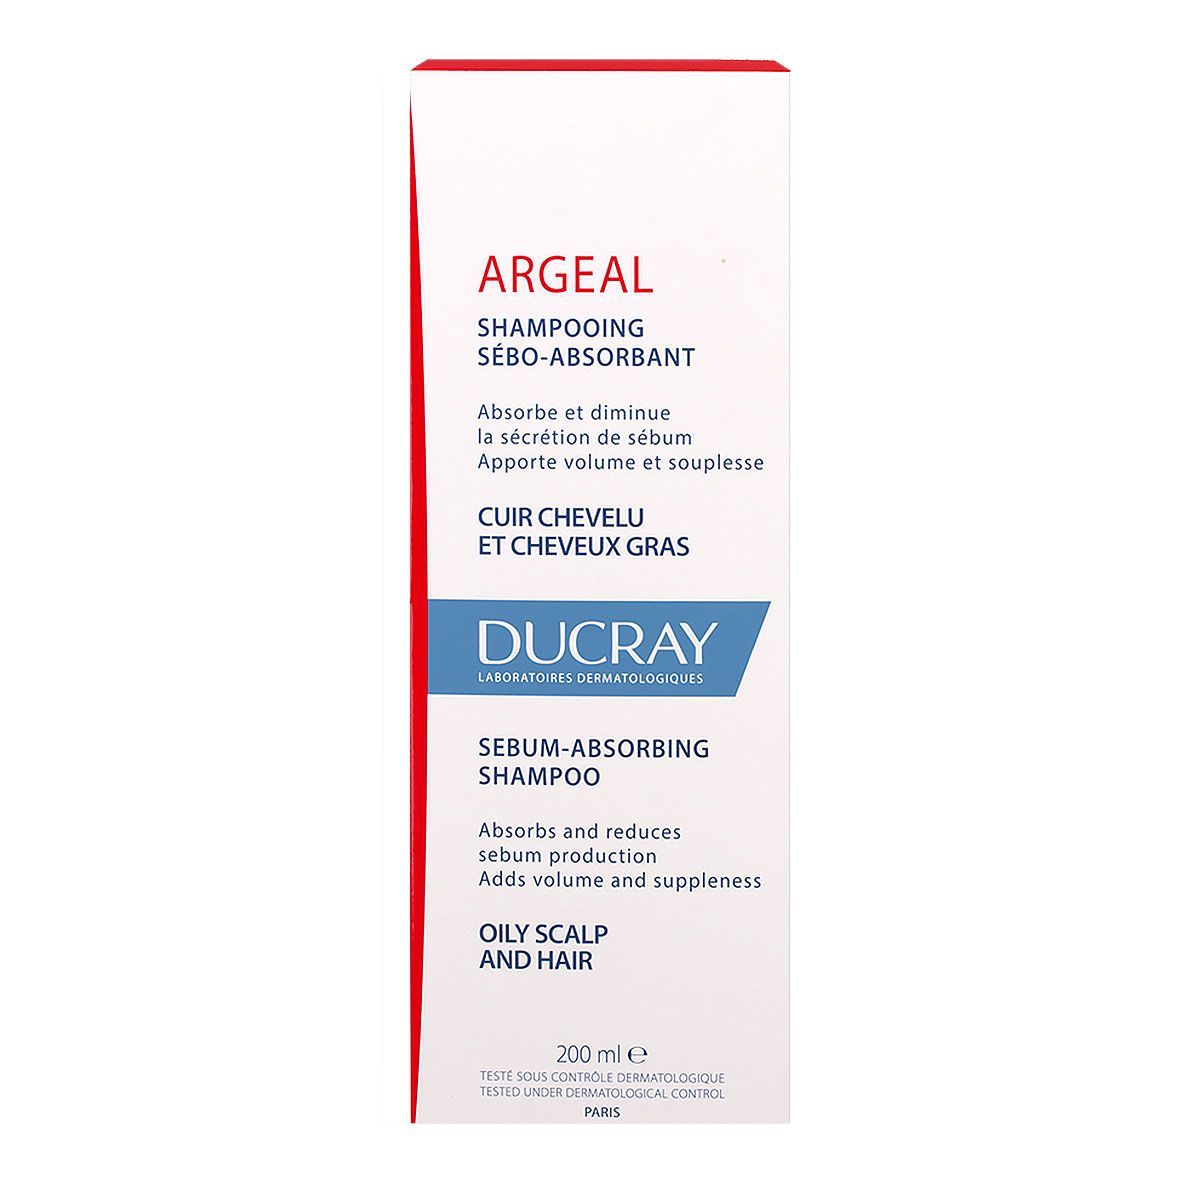 Argeal shampoing 200ml